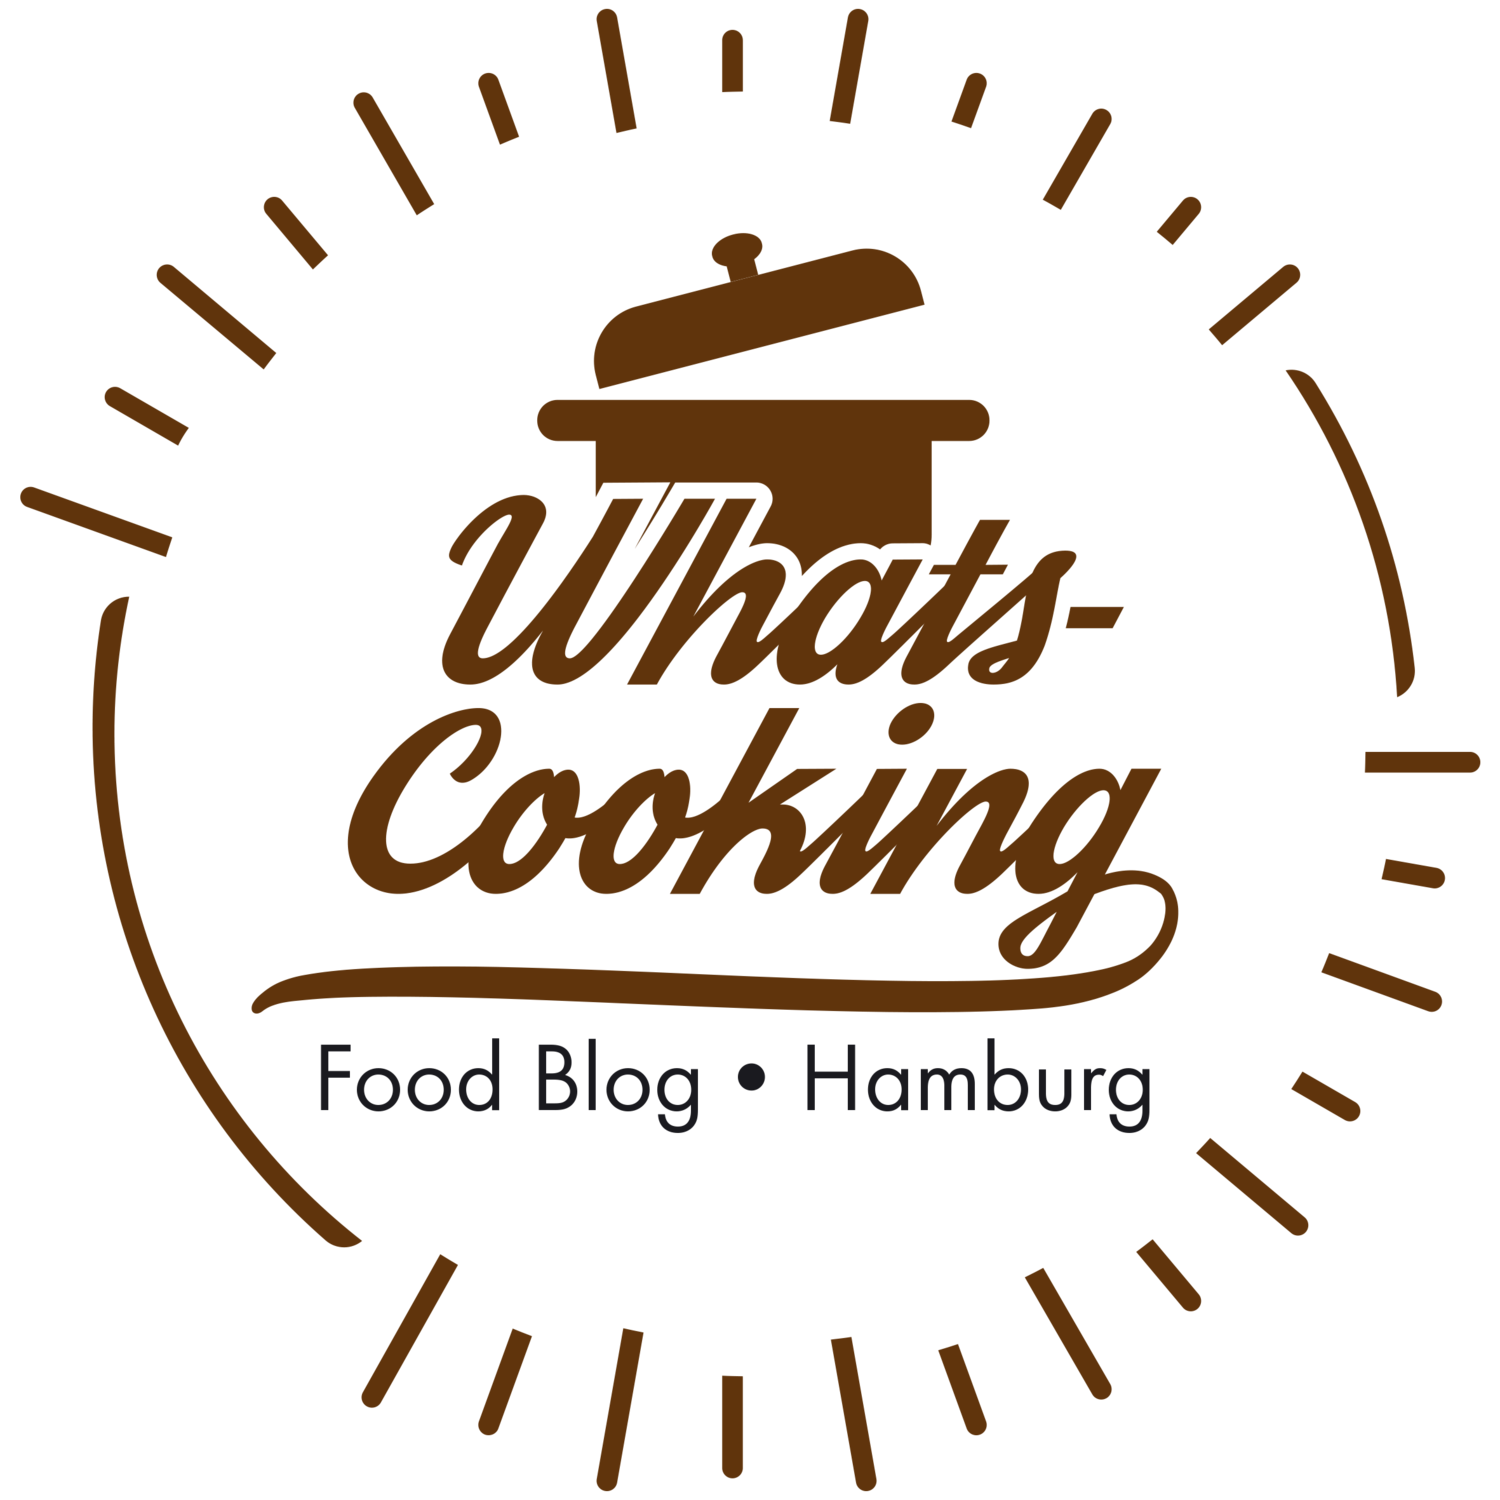 WHATS-COOKING.COM